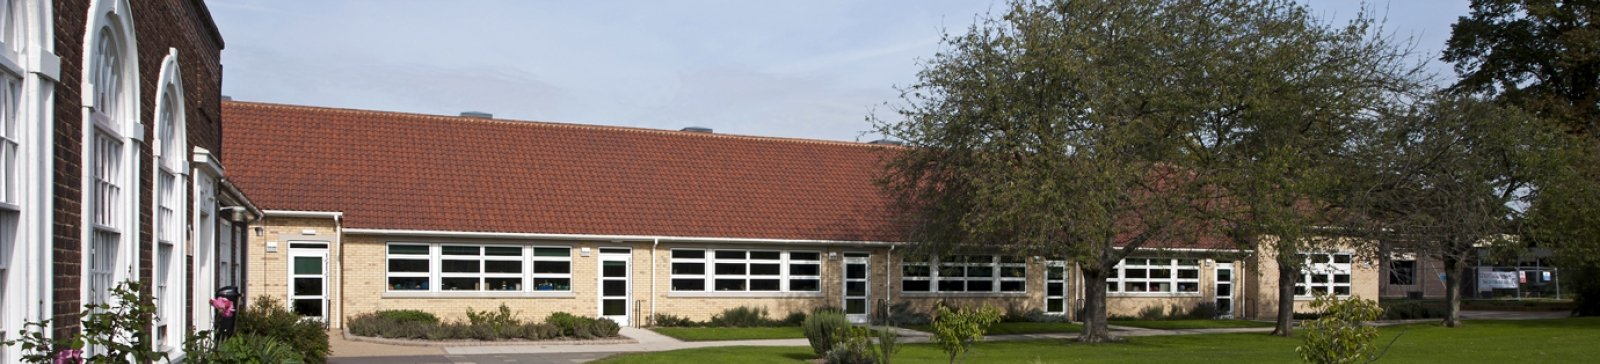 Sawston College, Cambridge